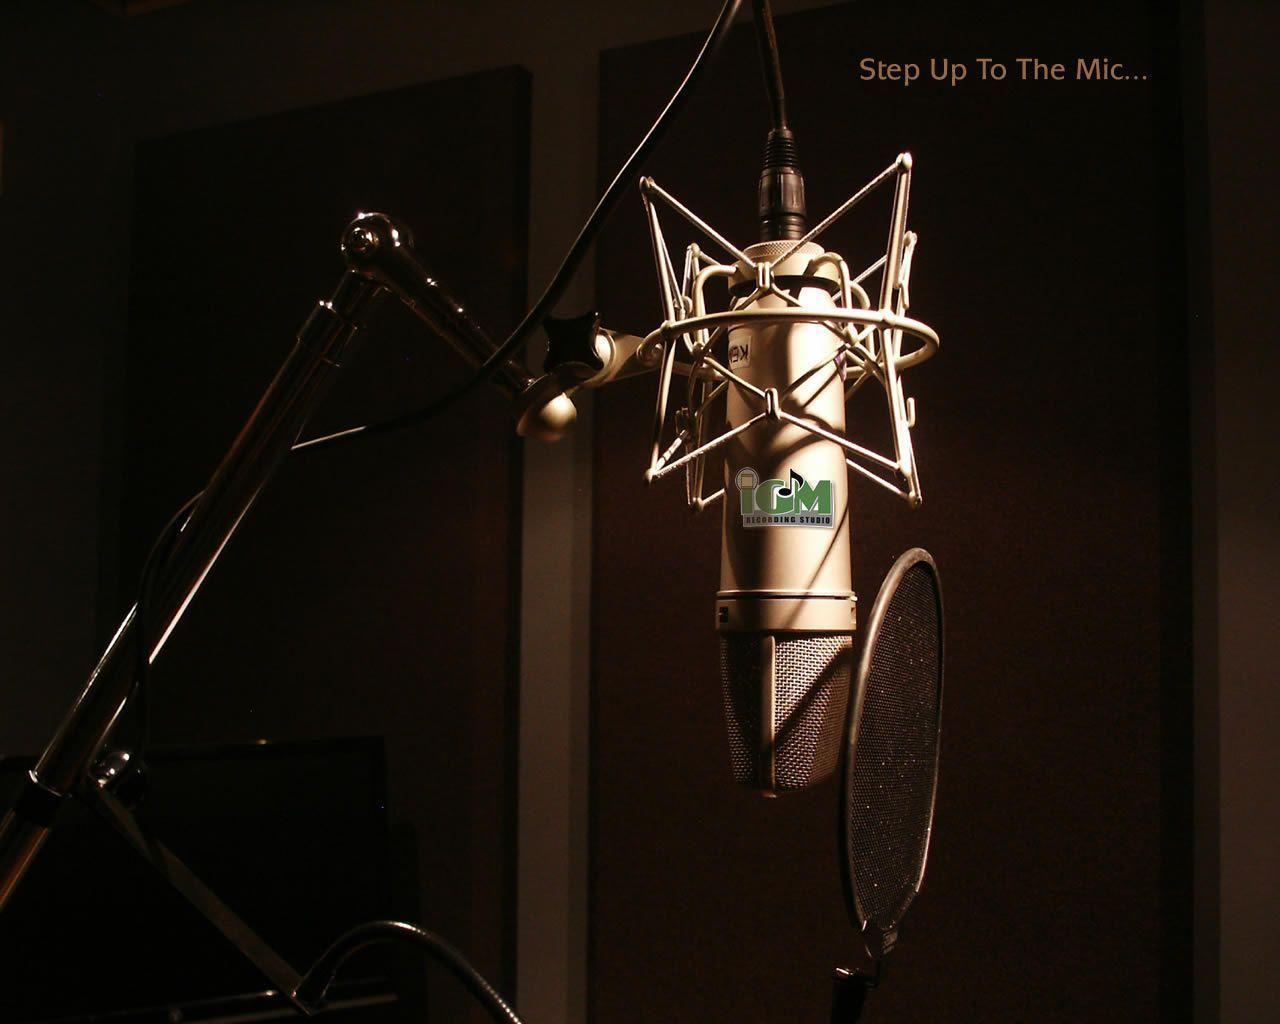 recording studio wallpaper joy - photo #44